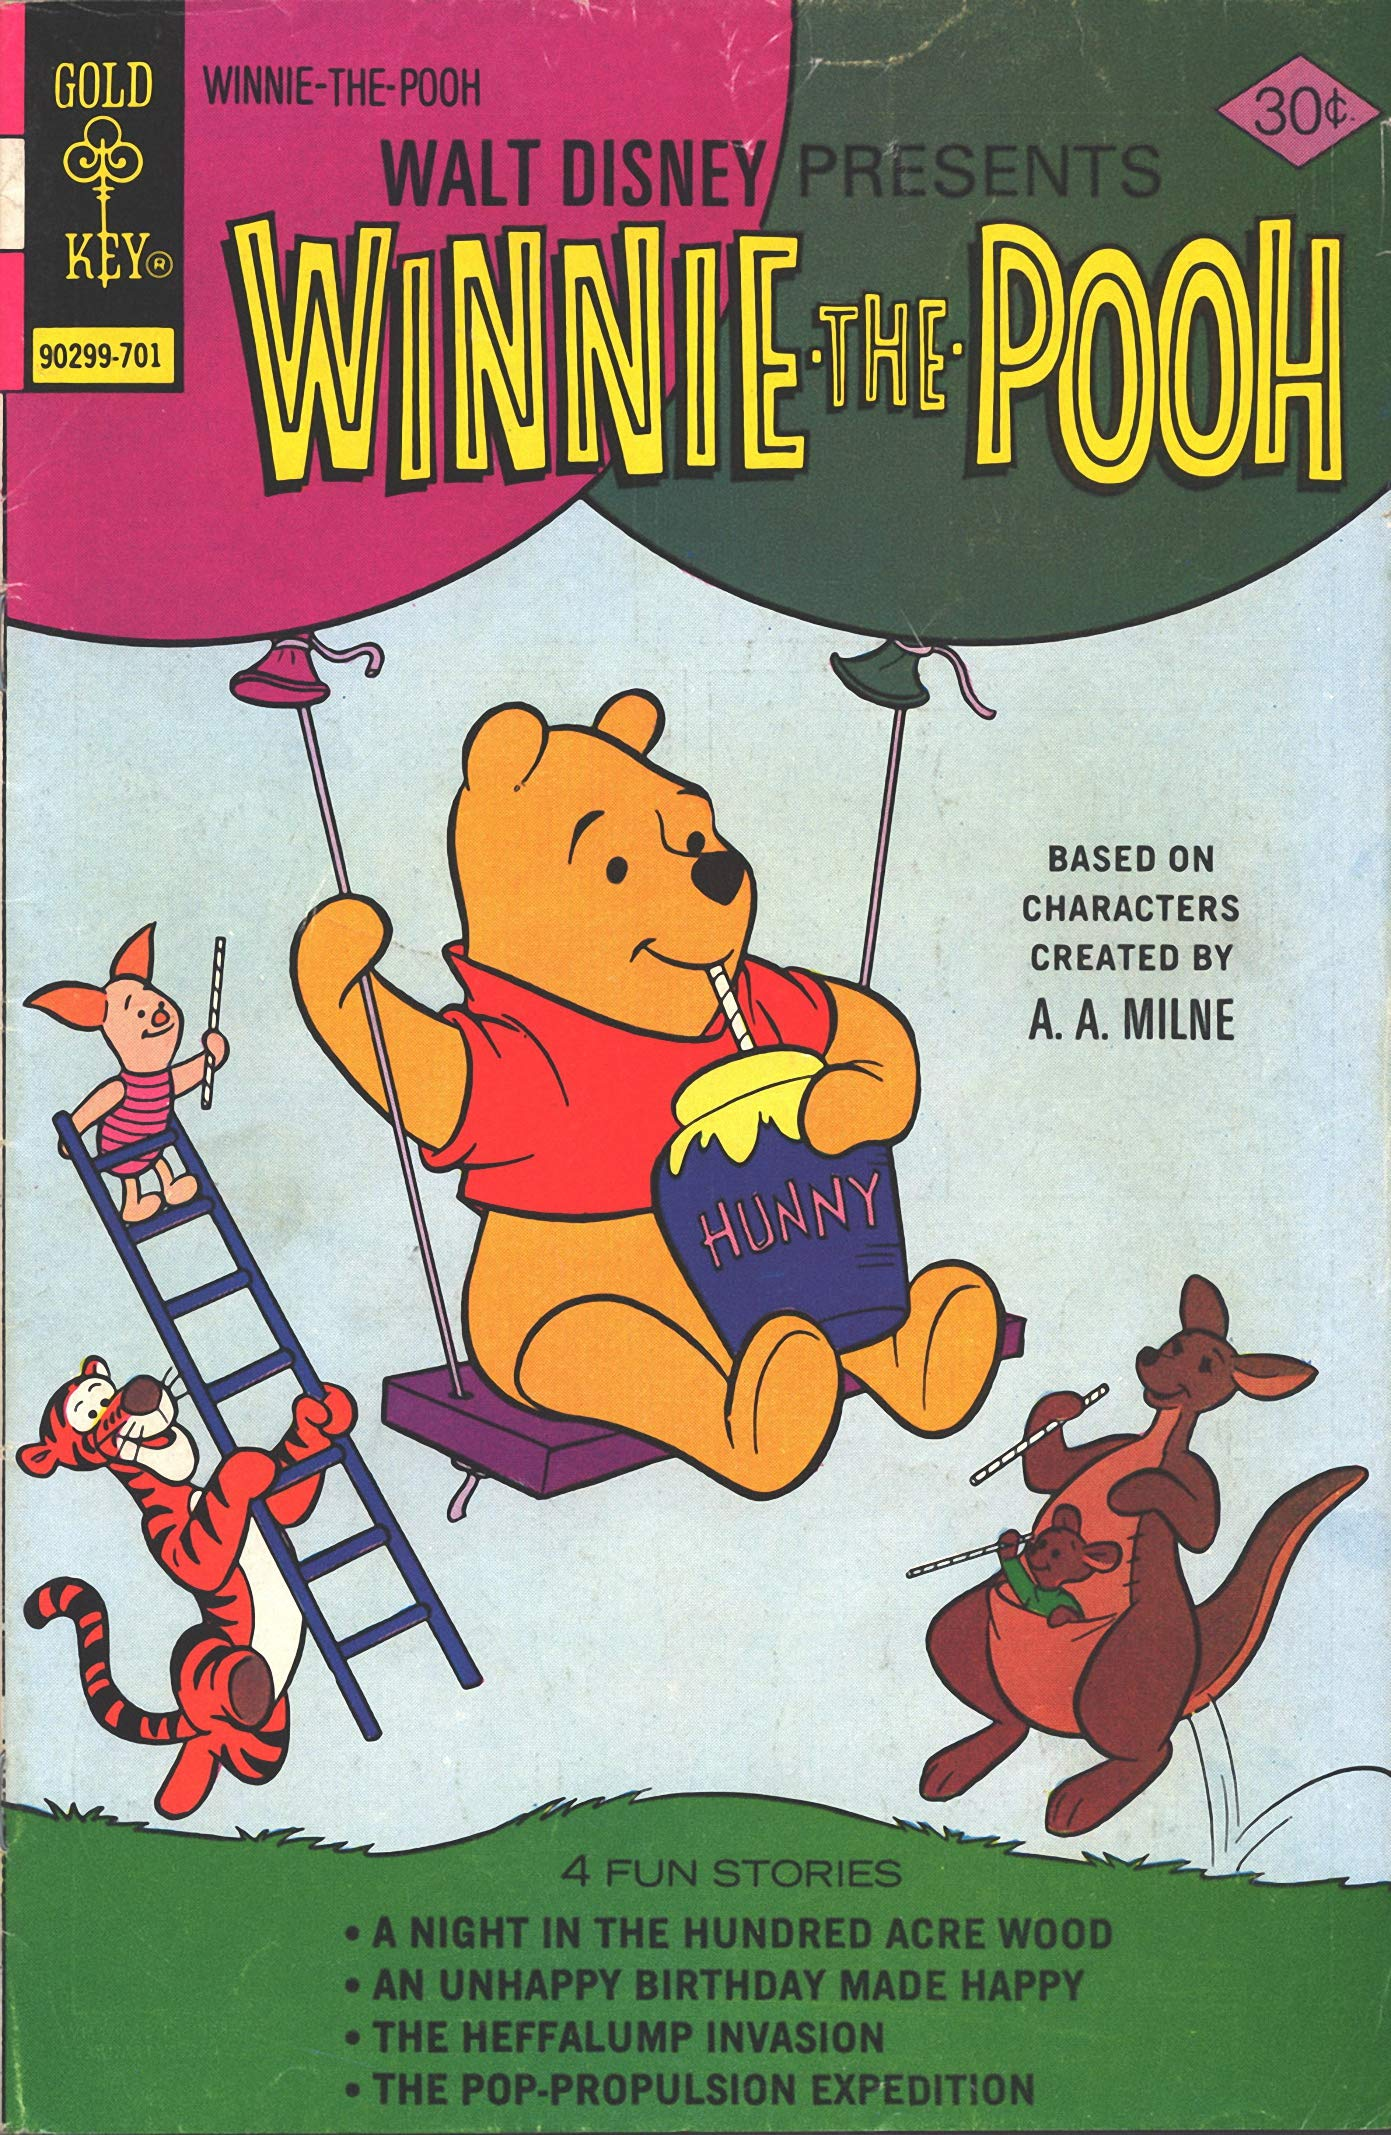 Winnie: The Pooh - Vol 1 Great Disney Cartoon Adventure Bear Comic Graphic Novels For Young & Teens , Adults Reader